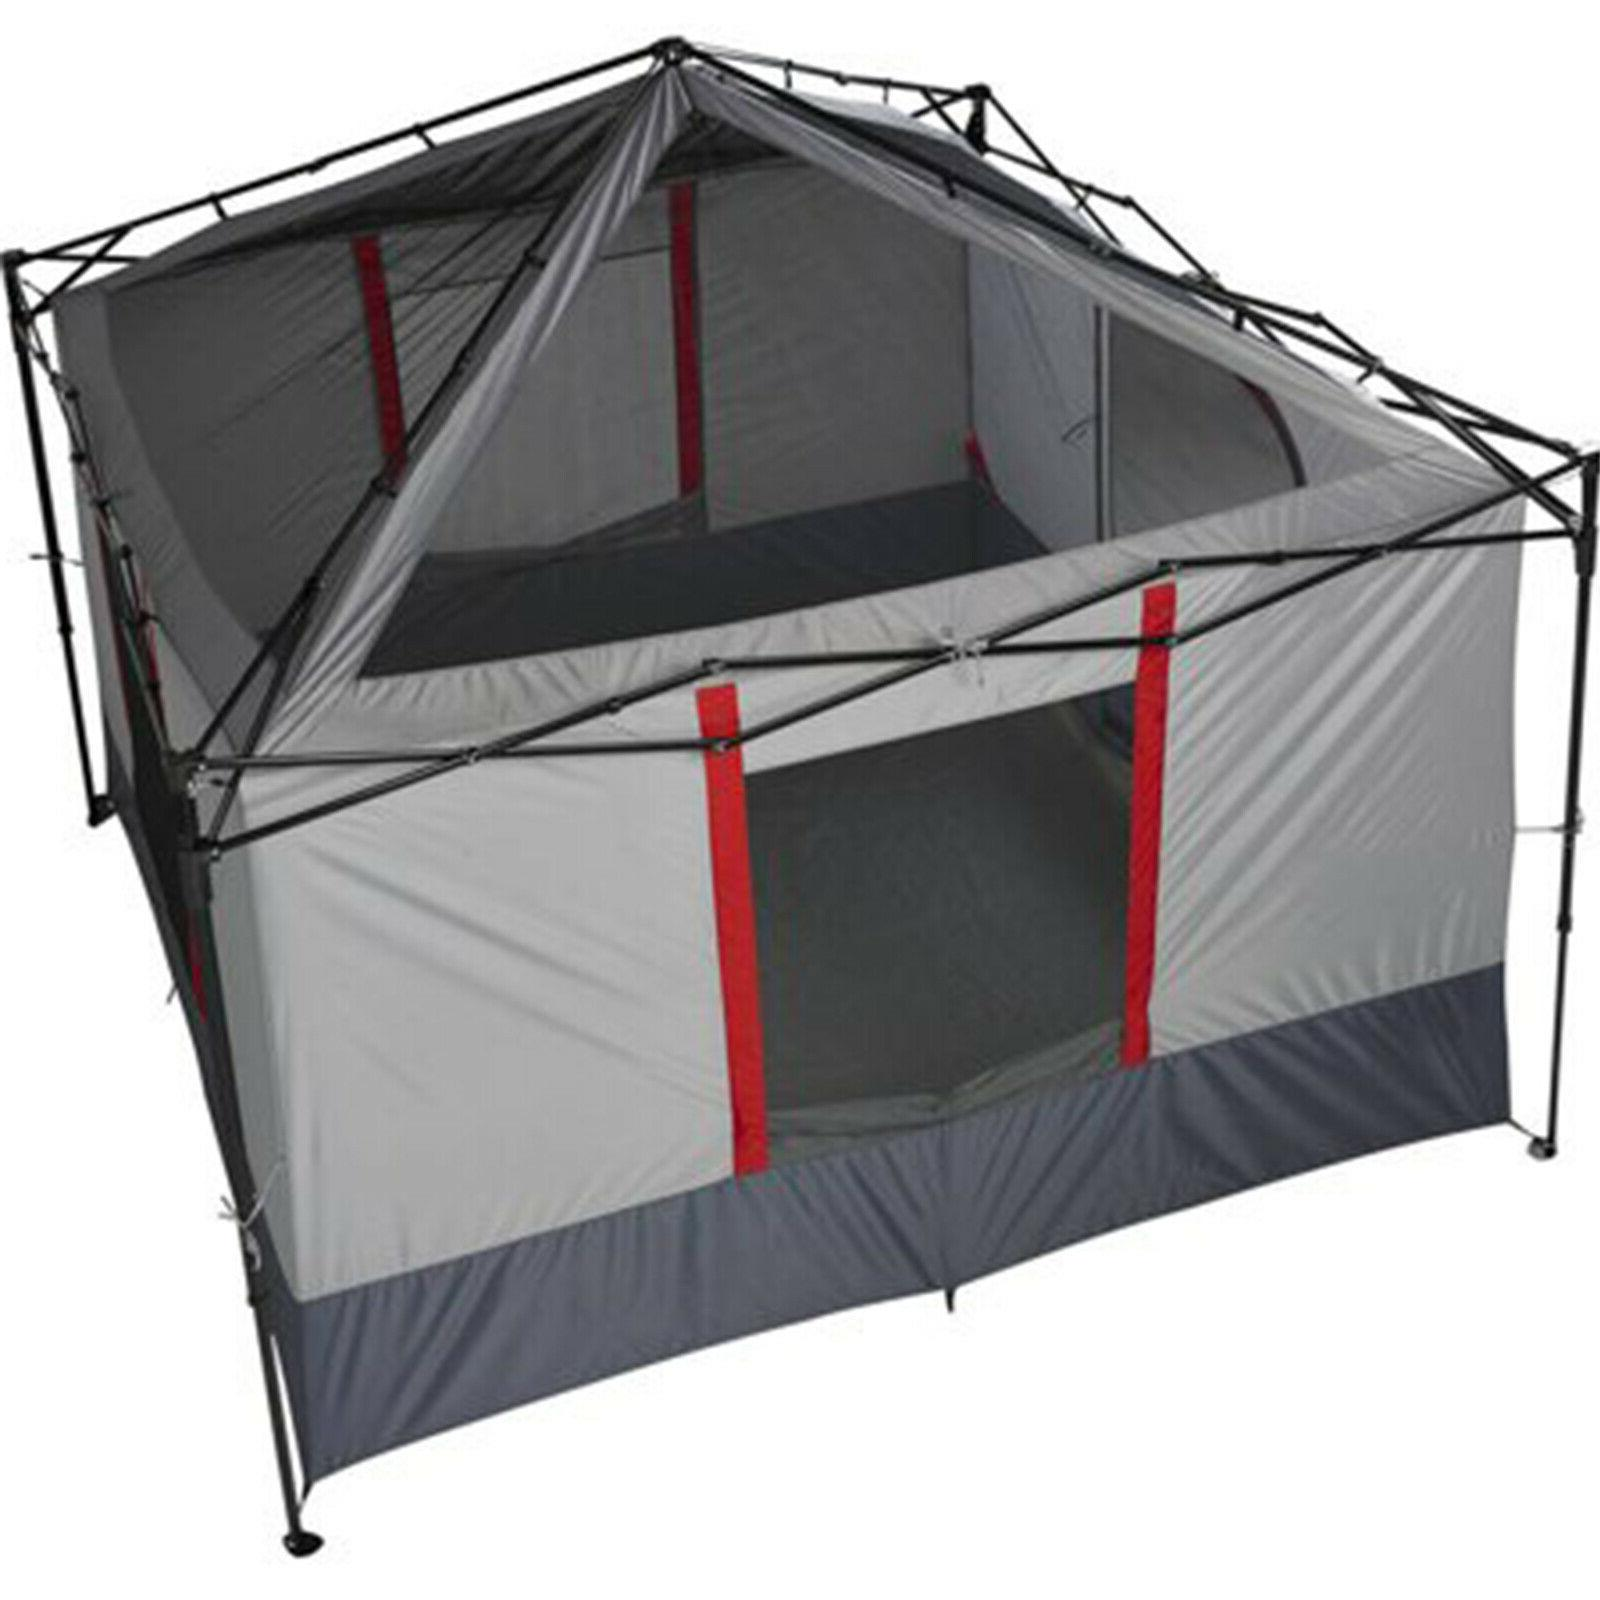 6-Person ConnecTenT Straight-leg Canopy Waterproof Hiking Camp